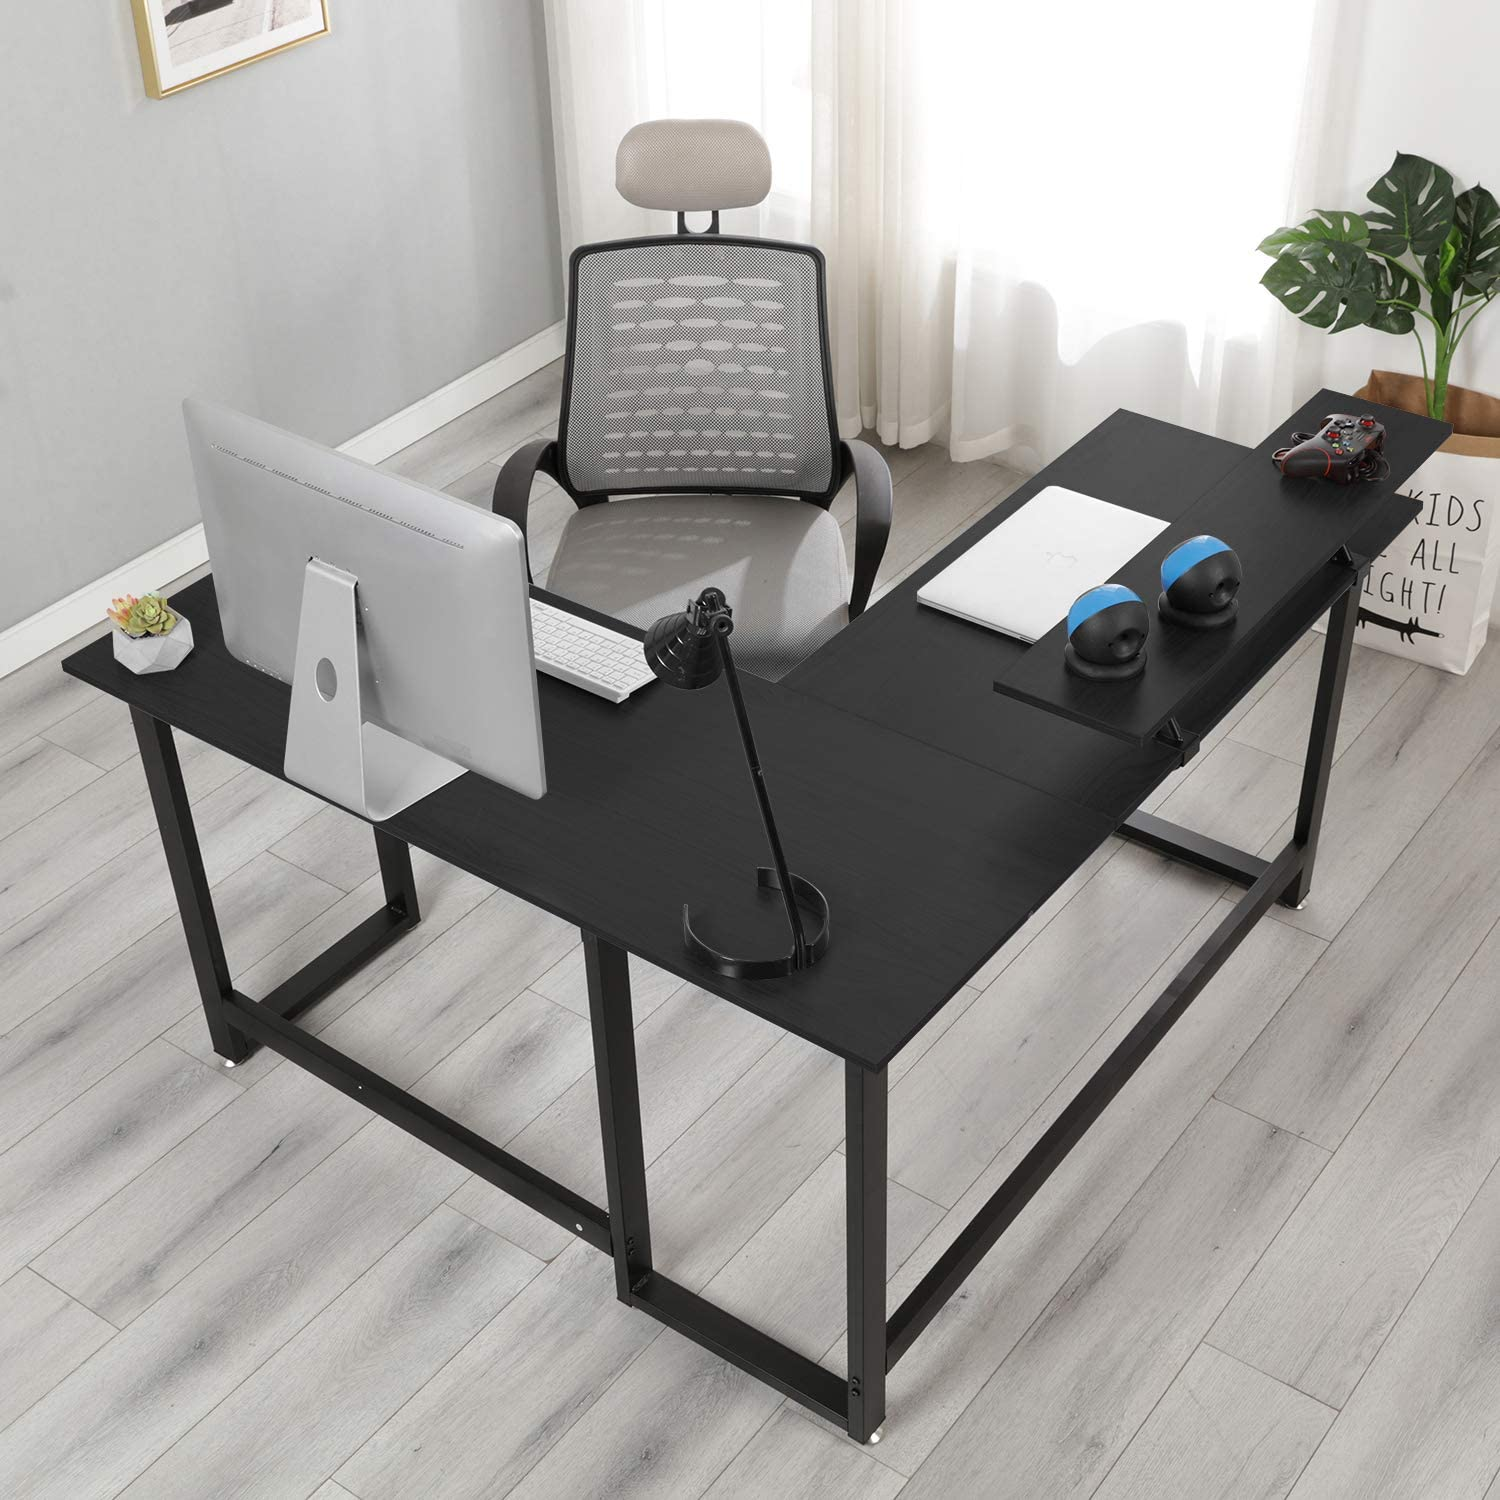 NeedHome L-Shaped Desk 55inches Folding Computer Desk Office L Corner Computer Table Workstation One-Step Assembly,Black AC11-CB-HCA